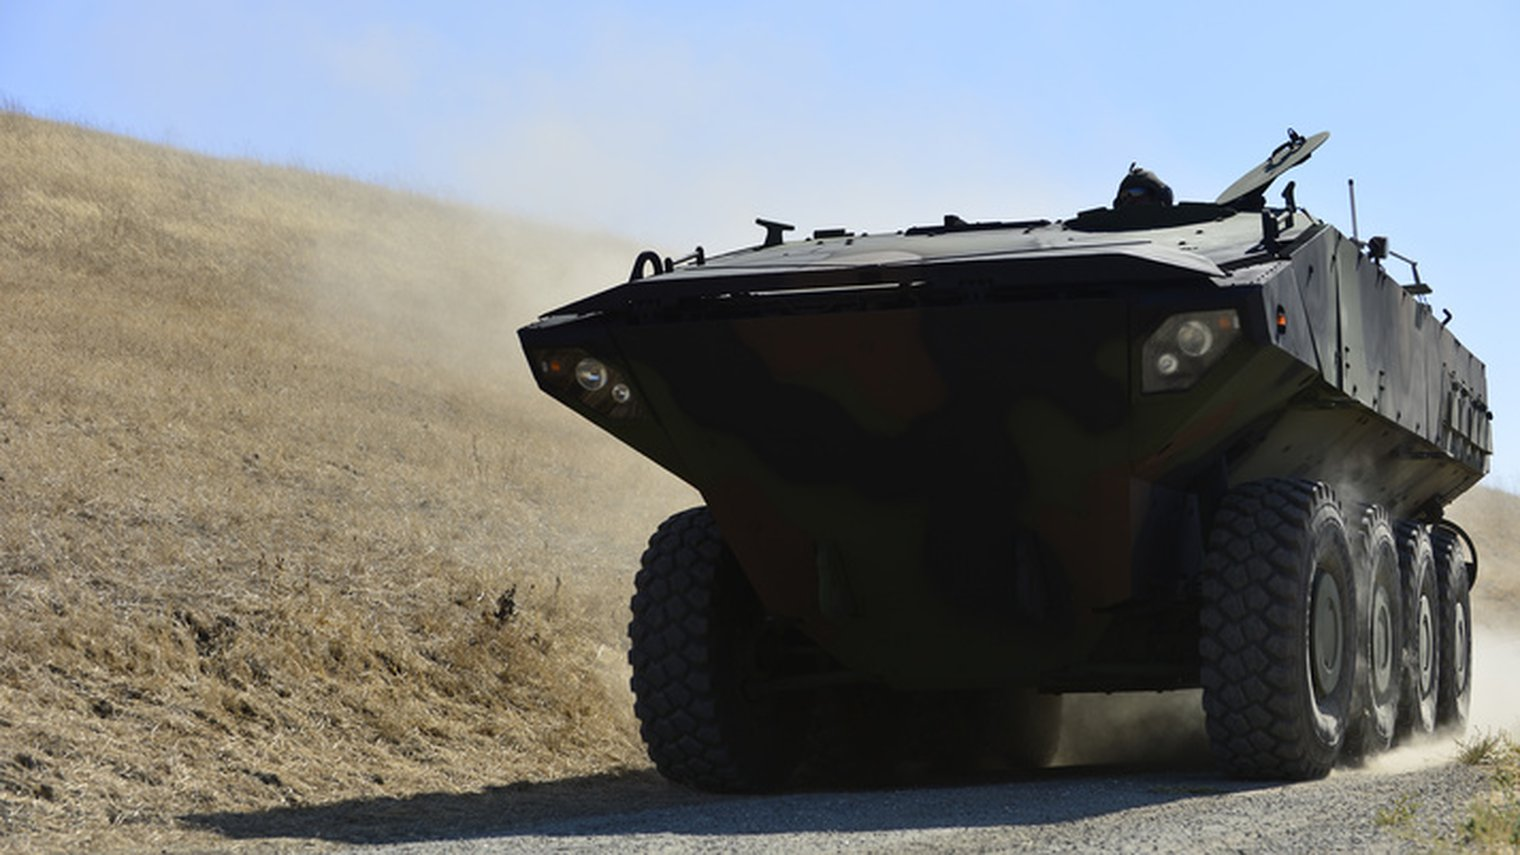 amphibious combat vehicles The marine corps is developing the amphibious combat vehicle to upgrade its ability to move marines from ship to shore under hostile conditions two contractors have produced prototypes only one contractor will be selected to produce the vehicle.